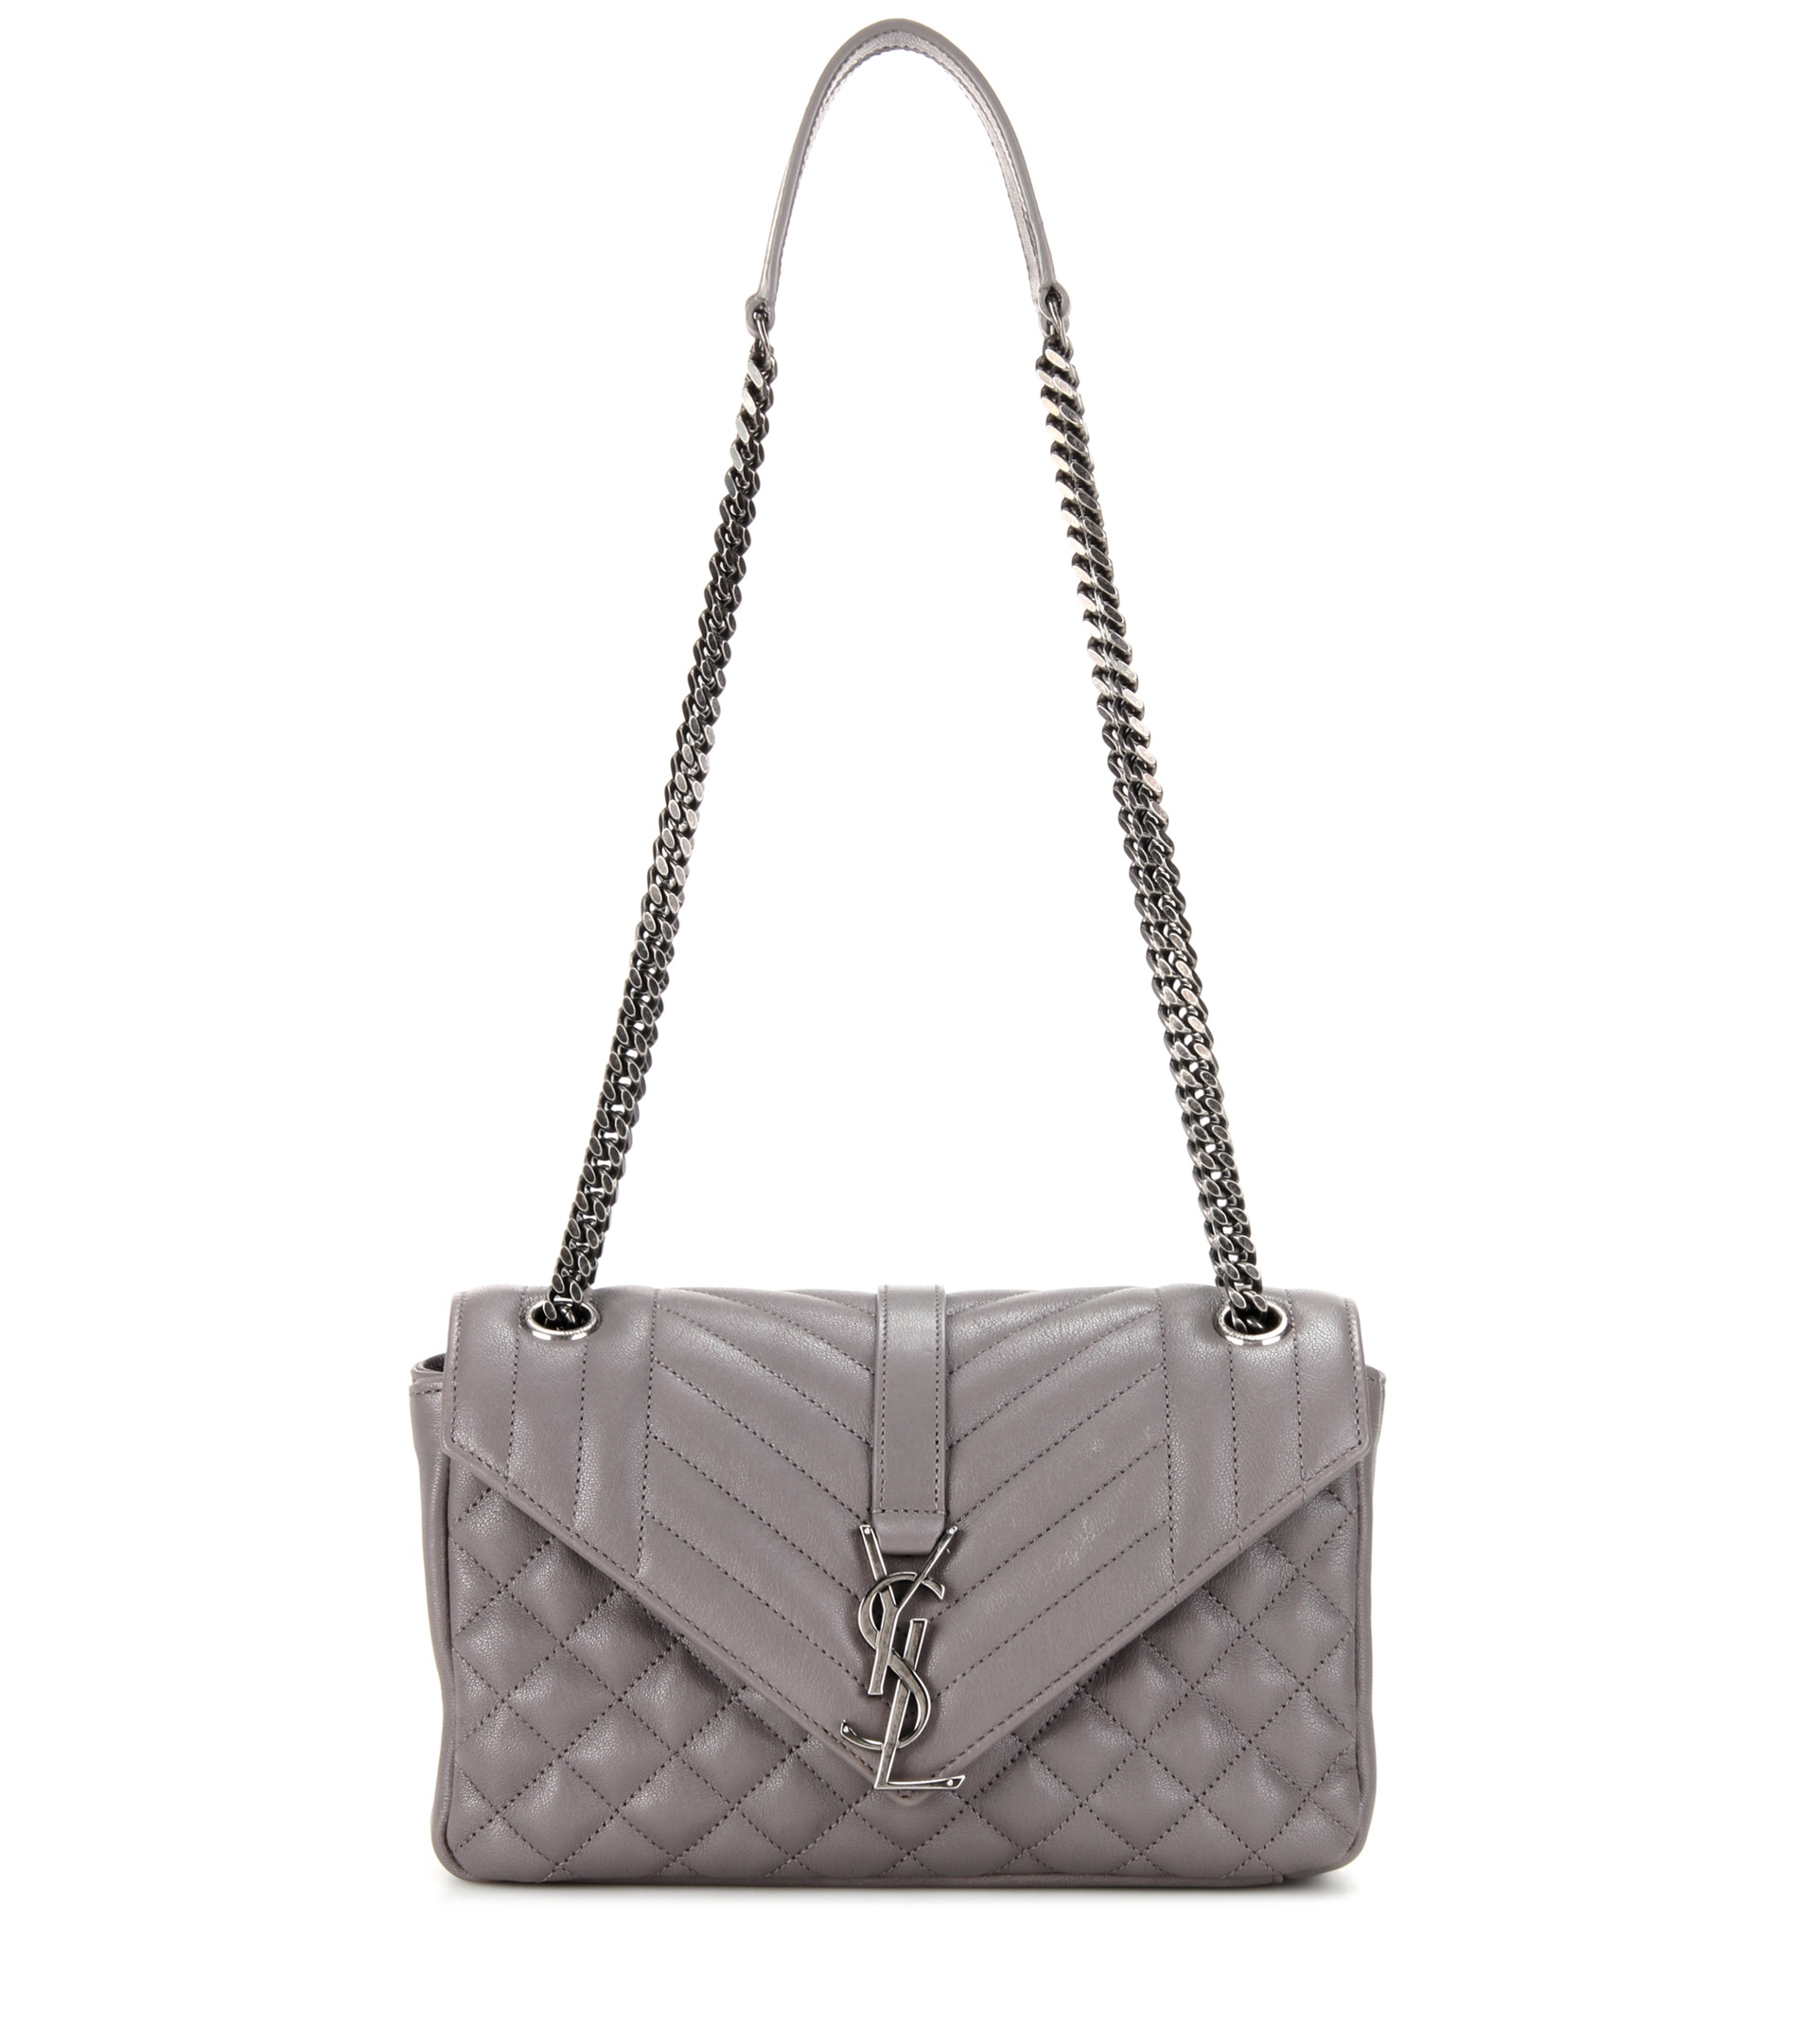 d36d935595 Lyst - Saint Laurent Medium Tri-Quilt Slouchy Leather Shoulder Bag ...